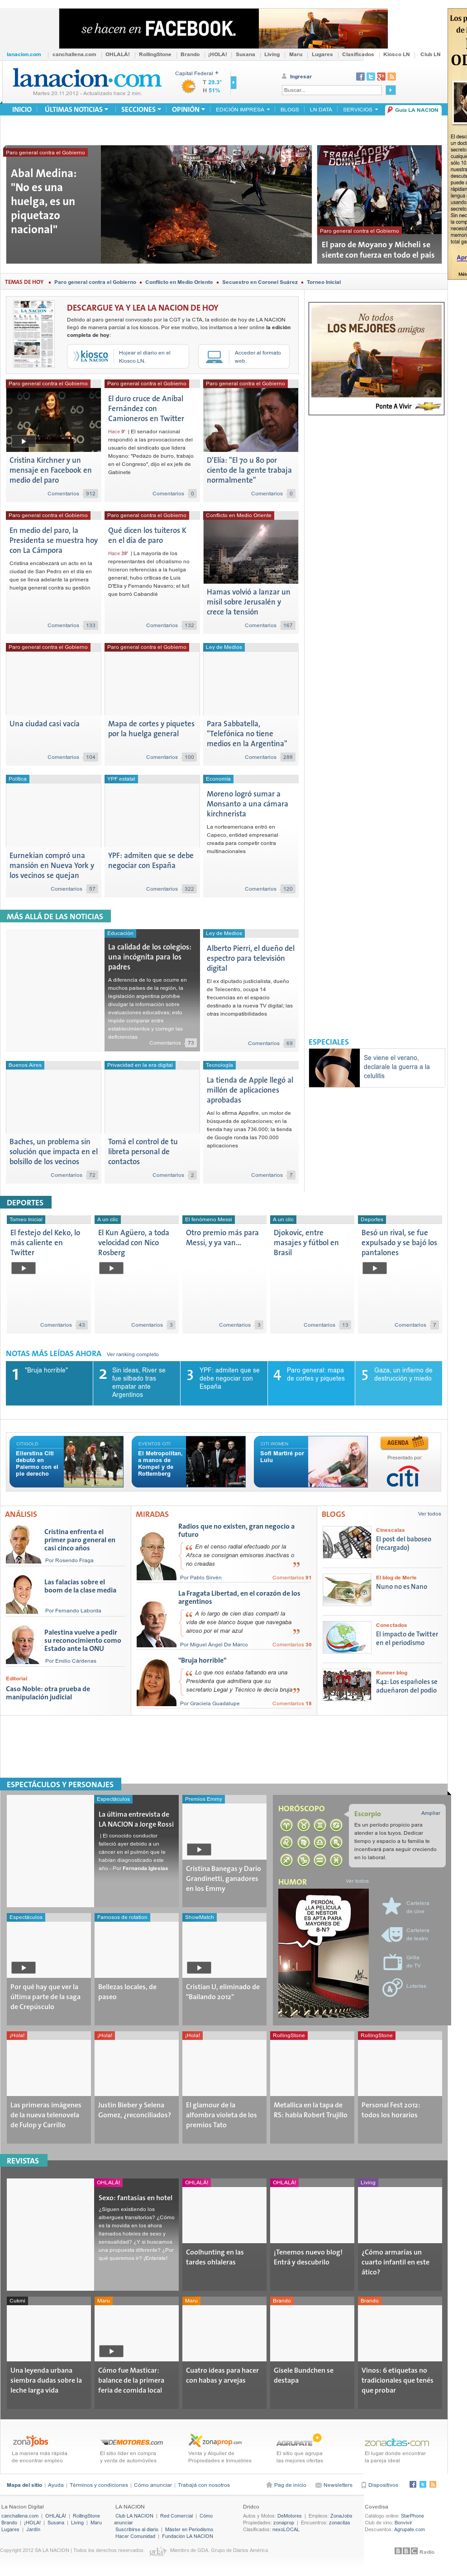 lanacion.com at Tuesday Nov. 20, 2012, 3:20 p.m. UTC